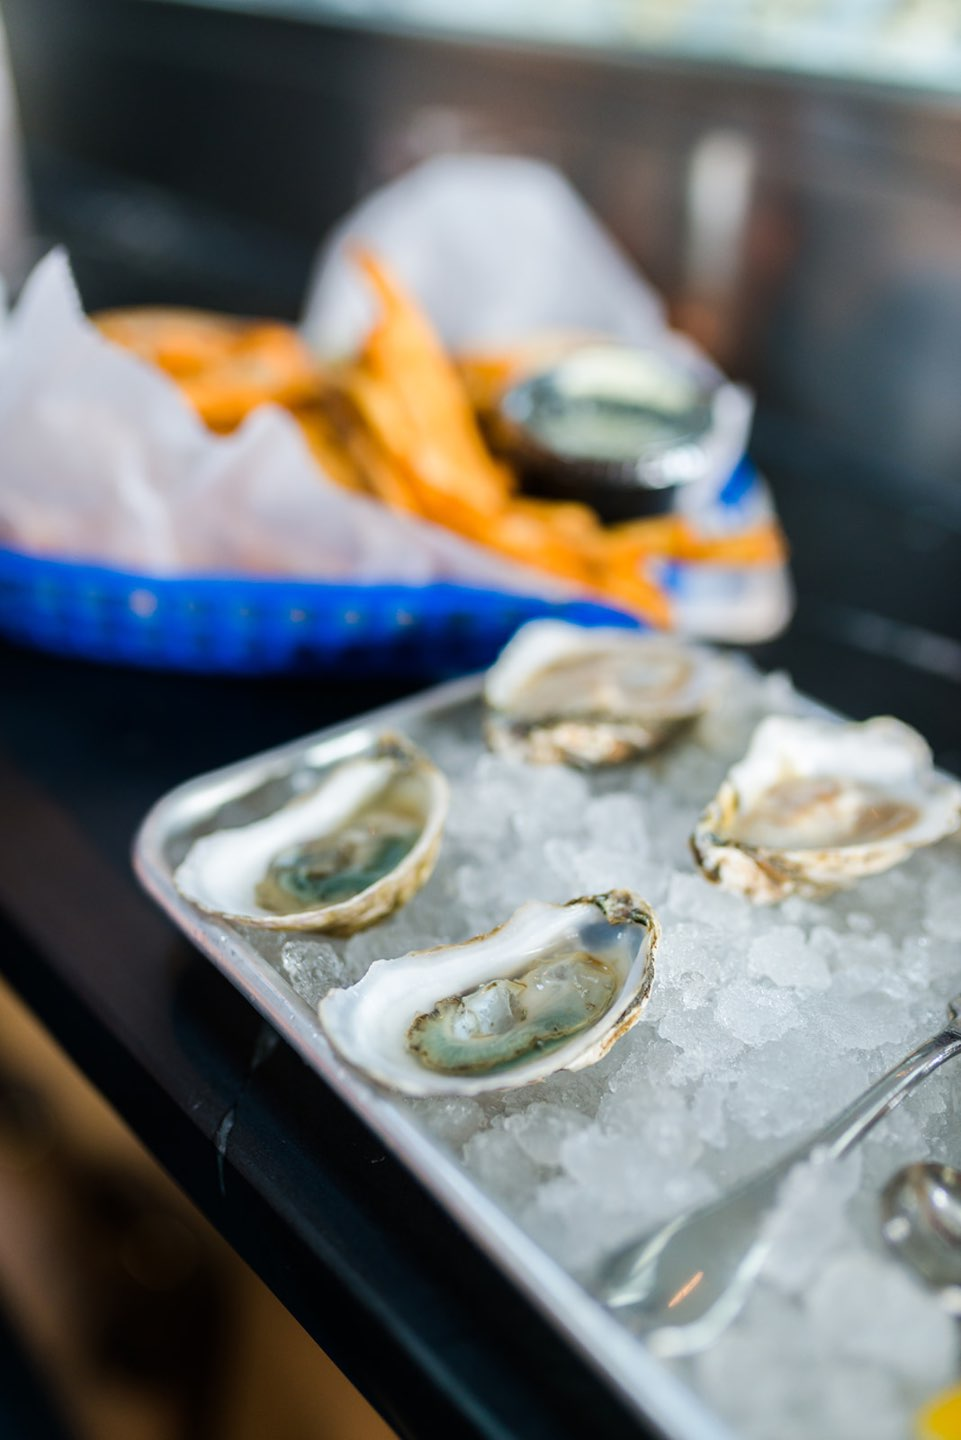 Raleigh Oyster Crawl - I'm Fixin' To - @mbg0112 | Raleigh Oyster Crawl by popular North Carolina blog, I'm Fixin' To: image of oysters on ice in a metal tray.